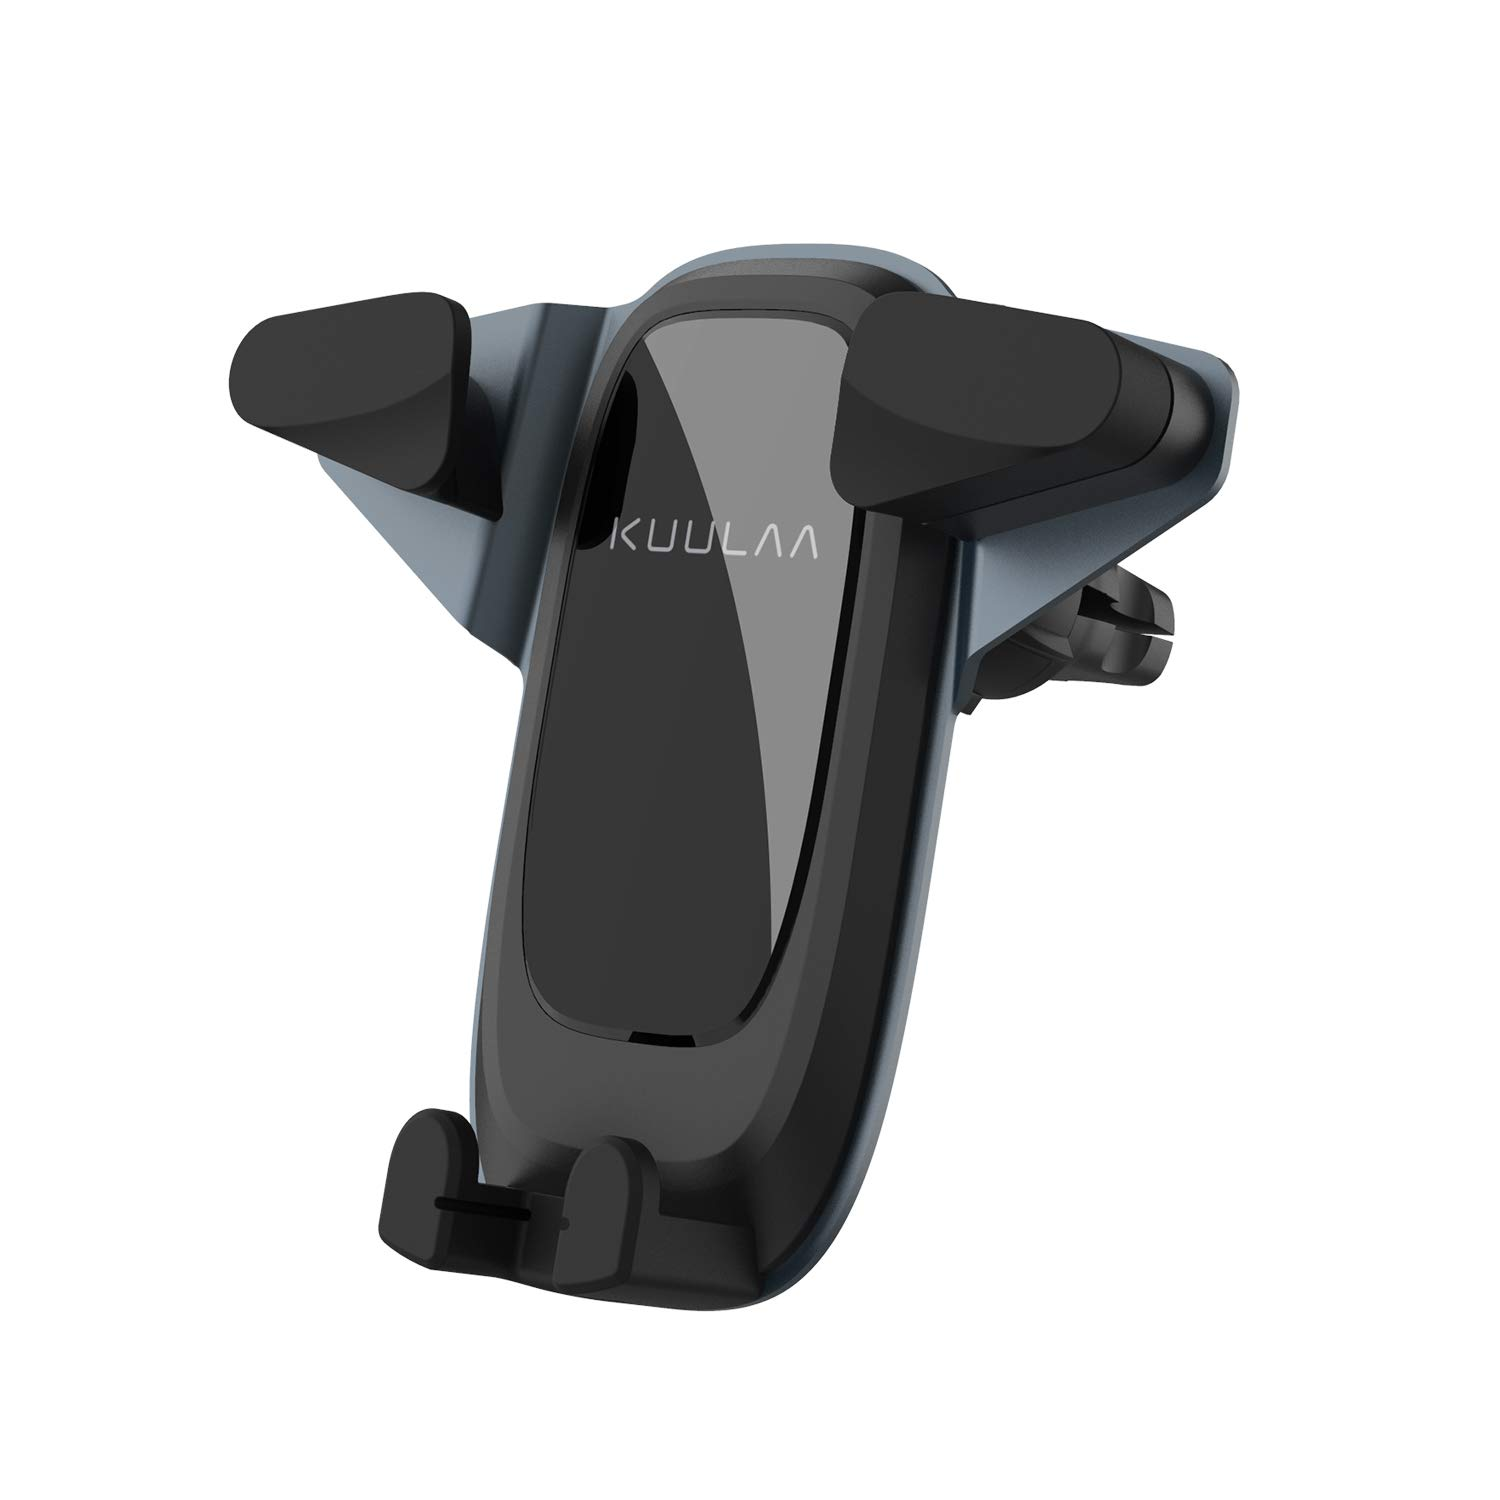 Kuulaa Car Mount Phone Holder,Universal 360° Rotation Car Air Vent Mobile Phone Cradle